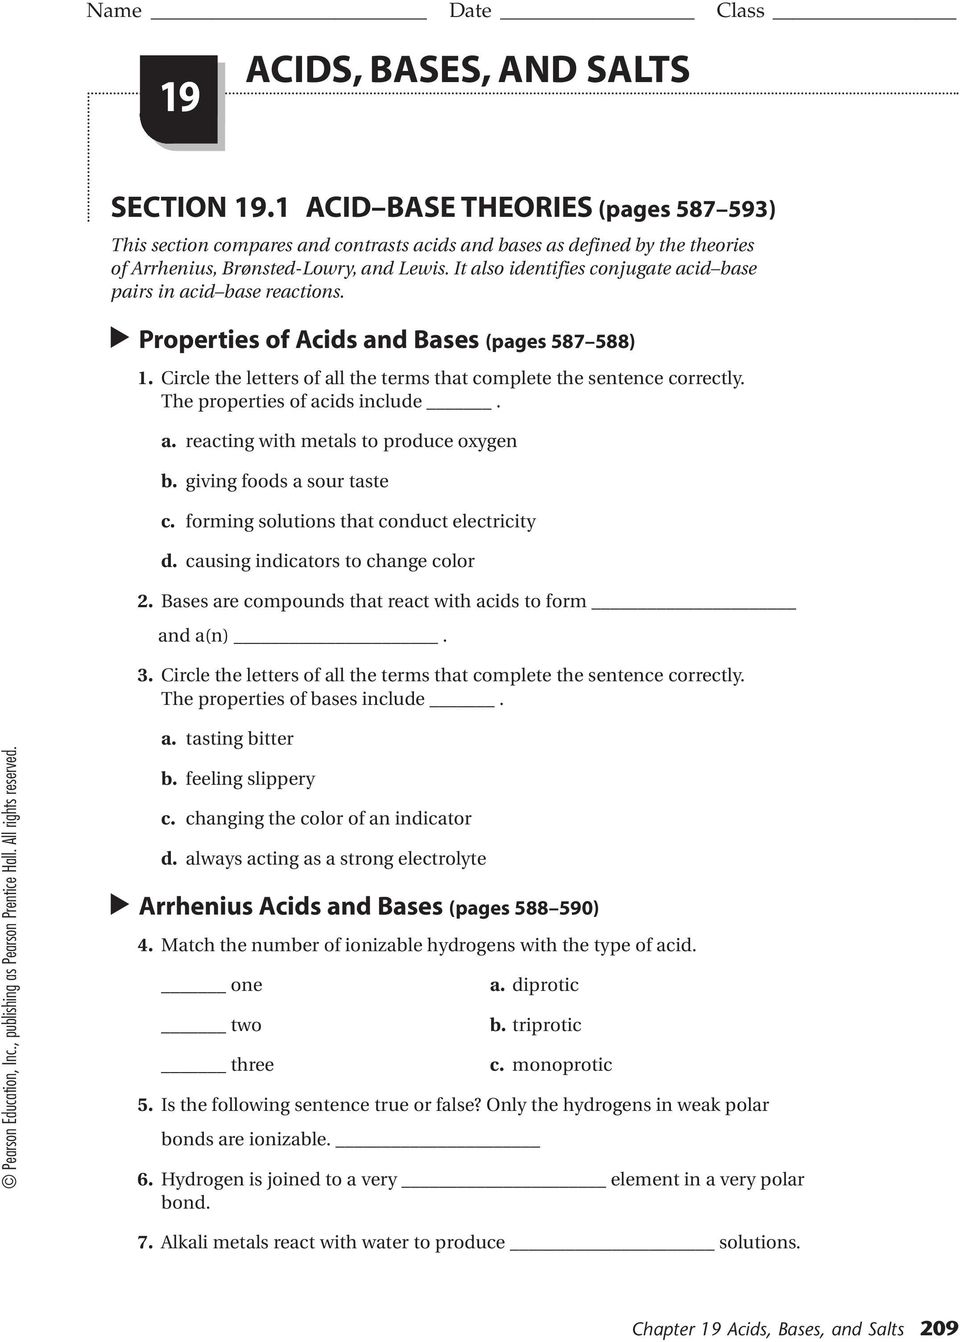 Uncategorized Naming Acids And Bases Worksheet naming acids and bases worksheet moniezja com 3 po 4 phosphoric acid 5 nh